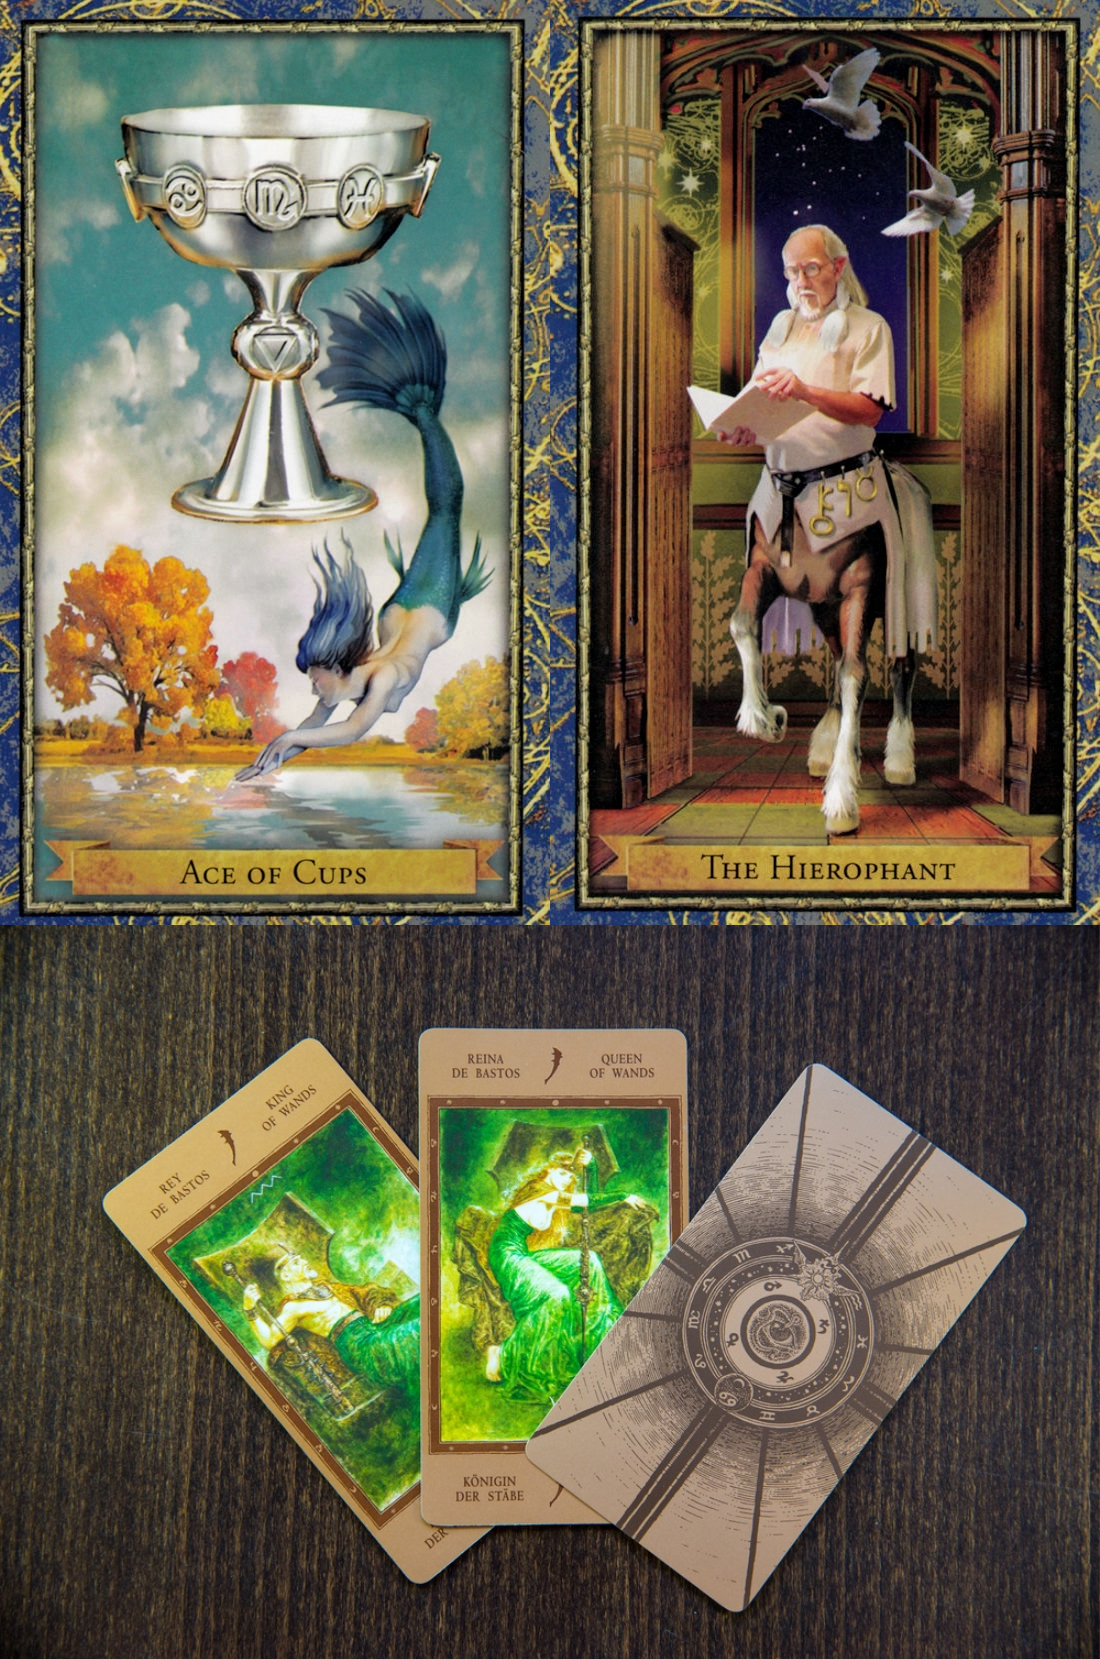 psychic tarot readings, vintage tarot cards and alison day